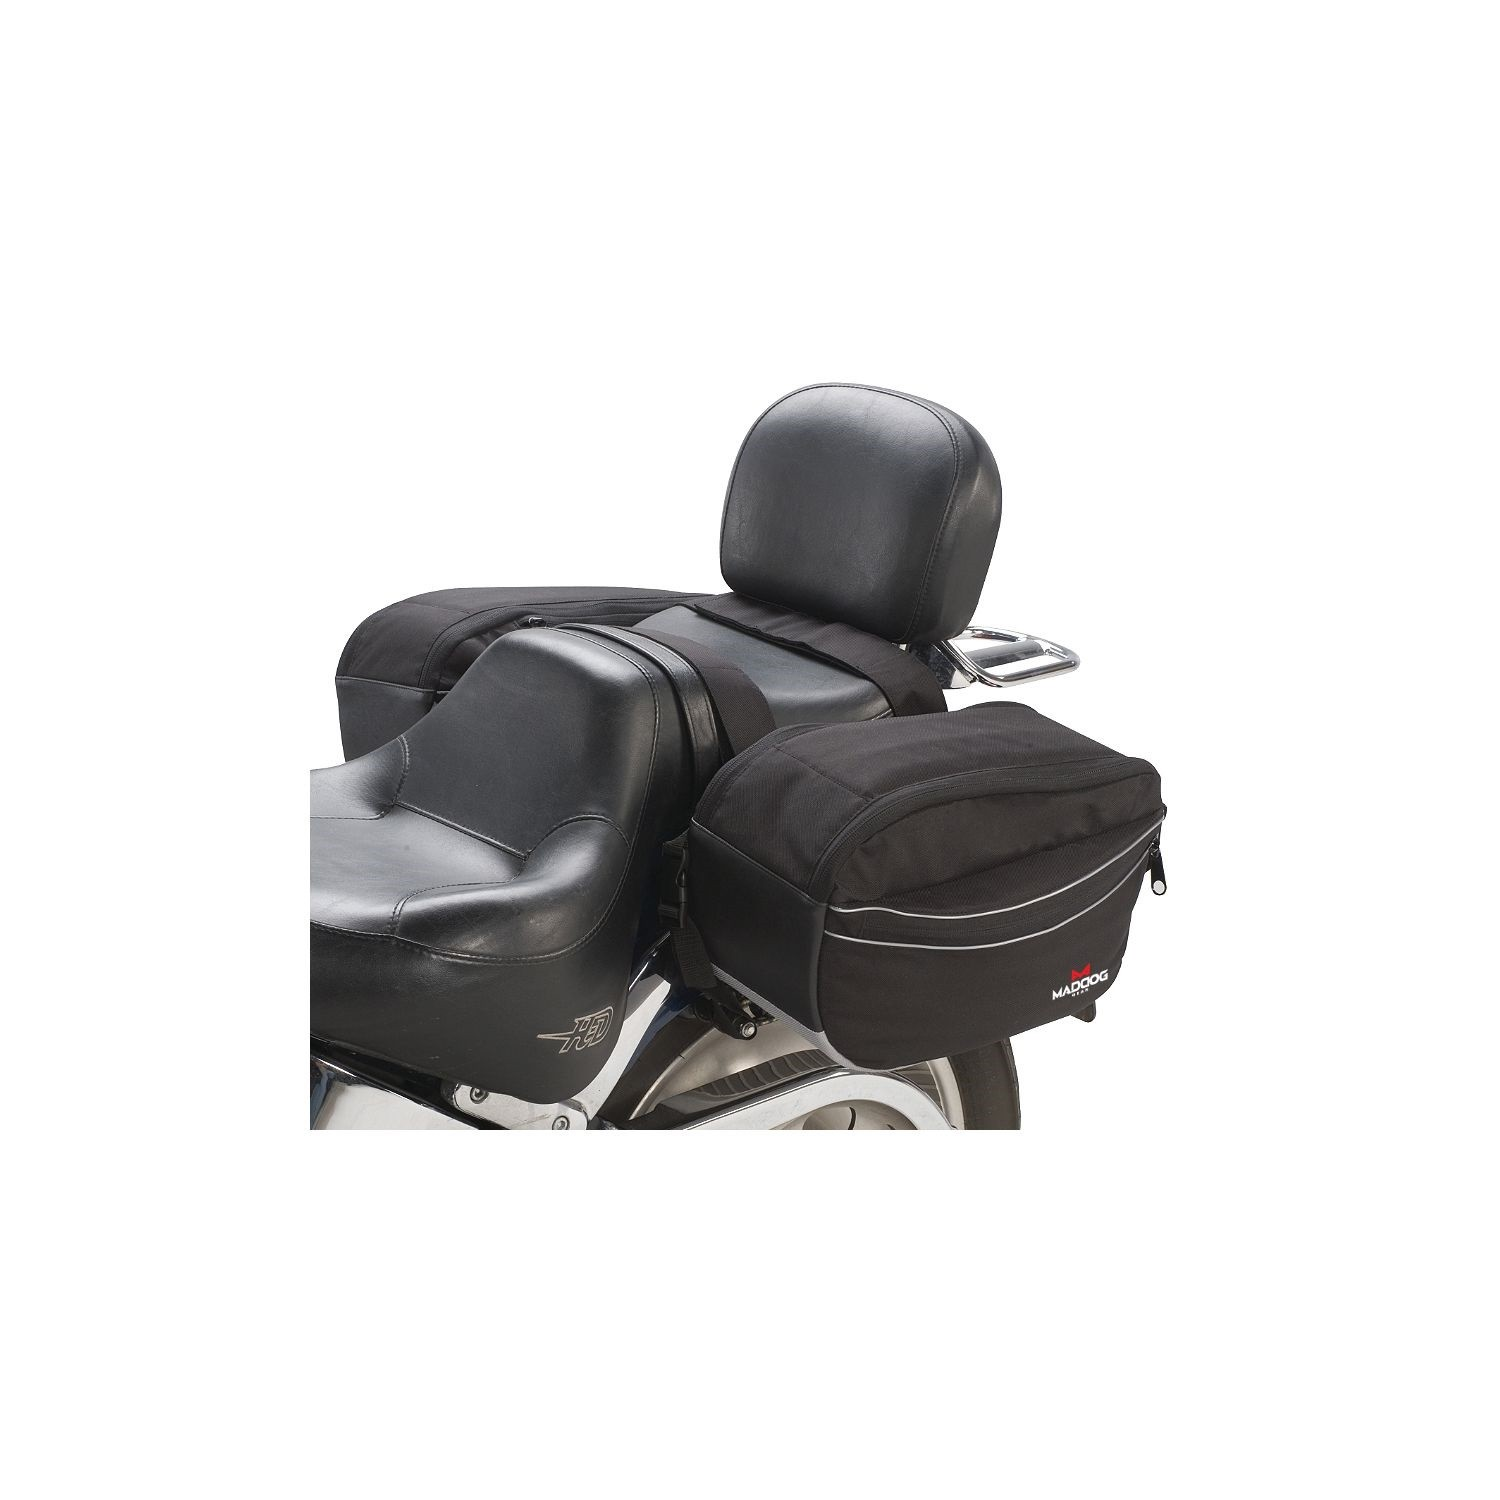 Paul Jr. Motorcycle Saddle Bag - Walmart.com